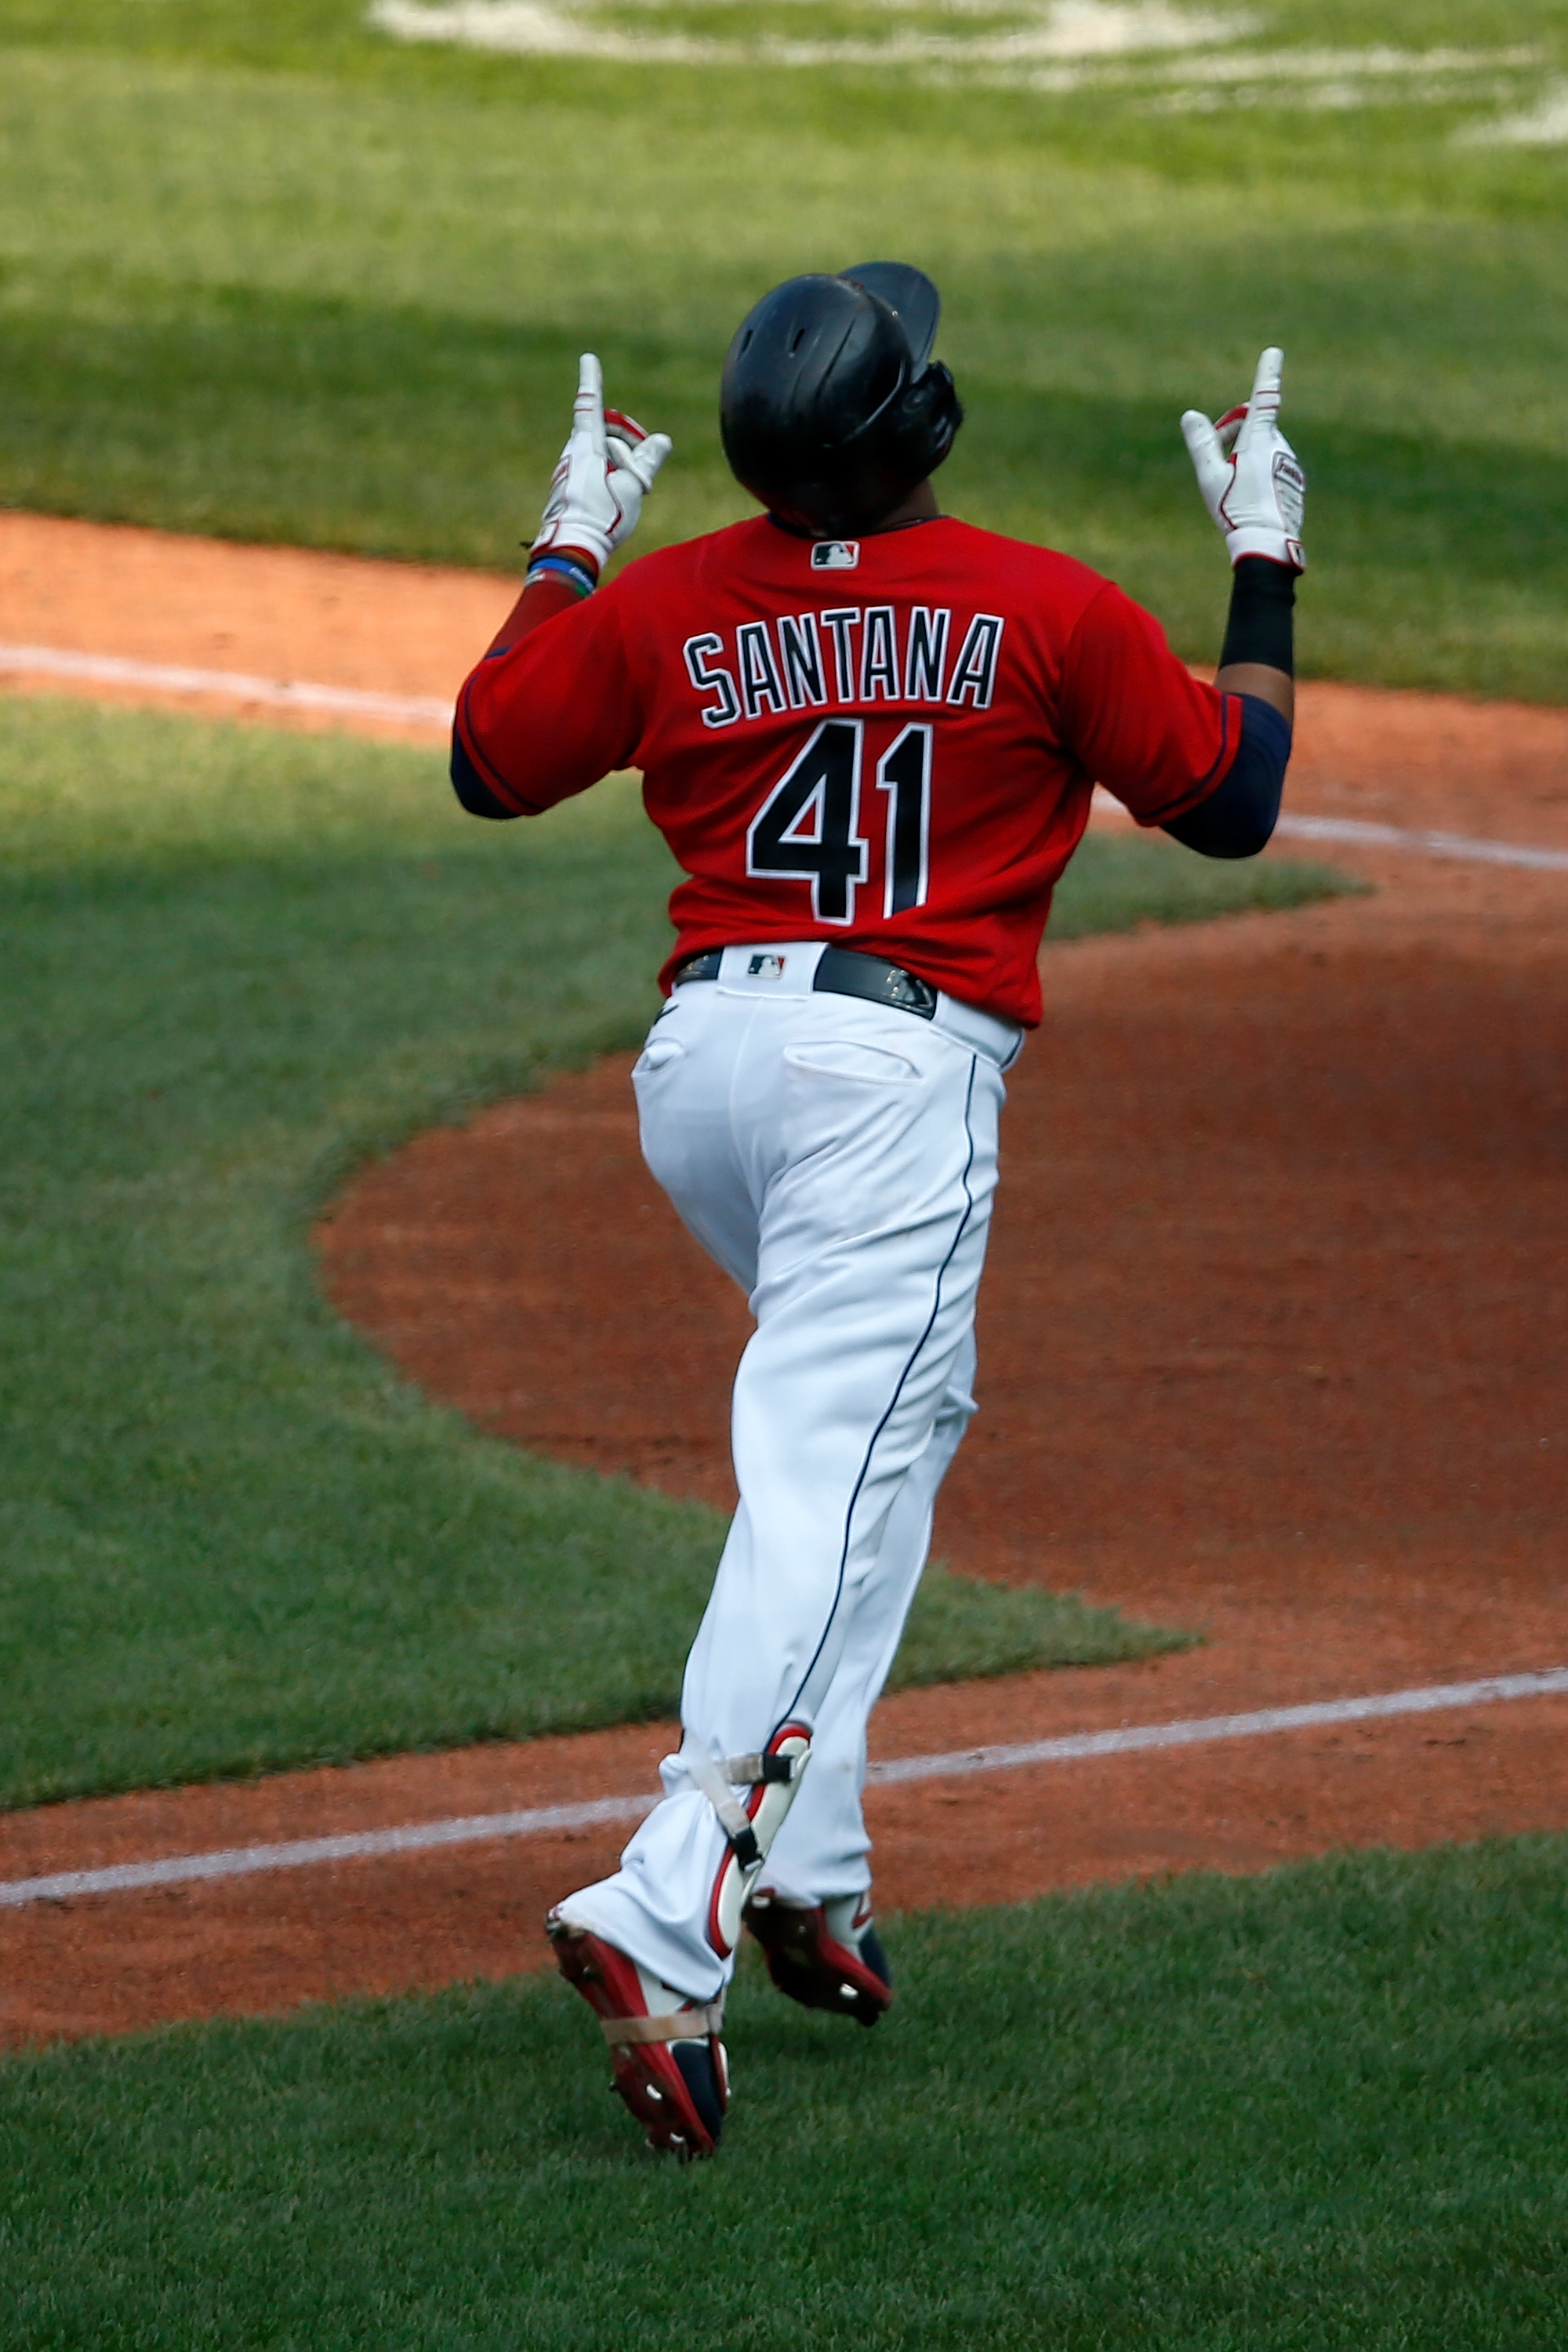 Carlos Santana #41 of the Cleveland Indians celebrates a home run while running the bases during the game against the Pittsburgh Pirates at Progressive Field on September 27, 2020 in Cleveland, Ohio.